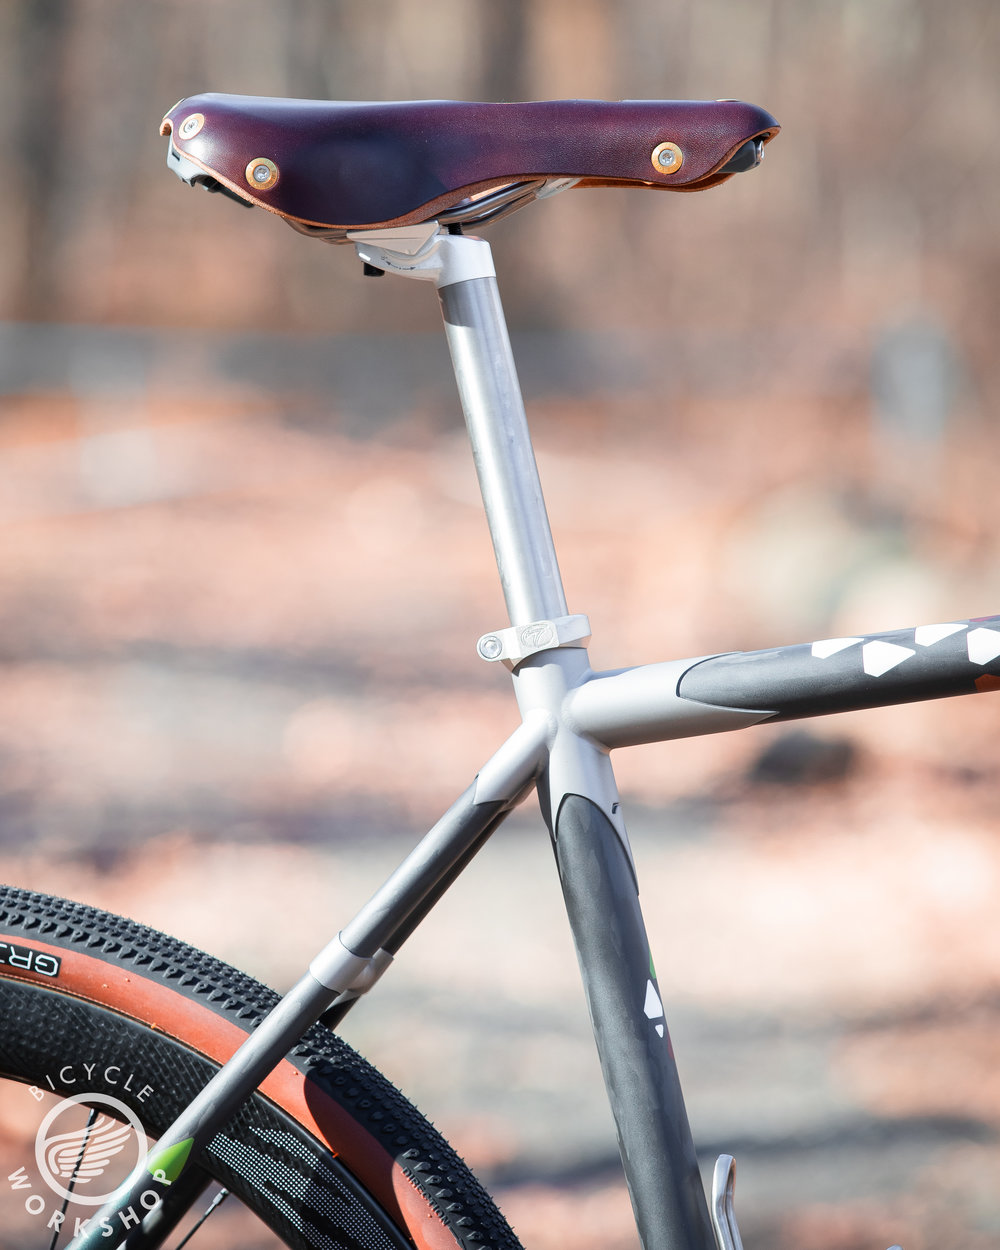 Berthoud saddle is comfy and elegant